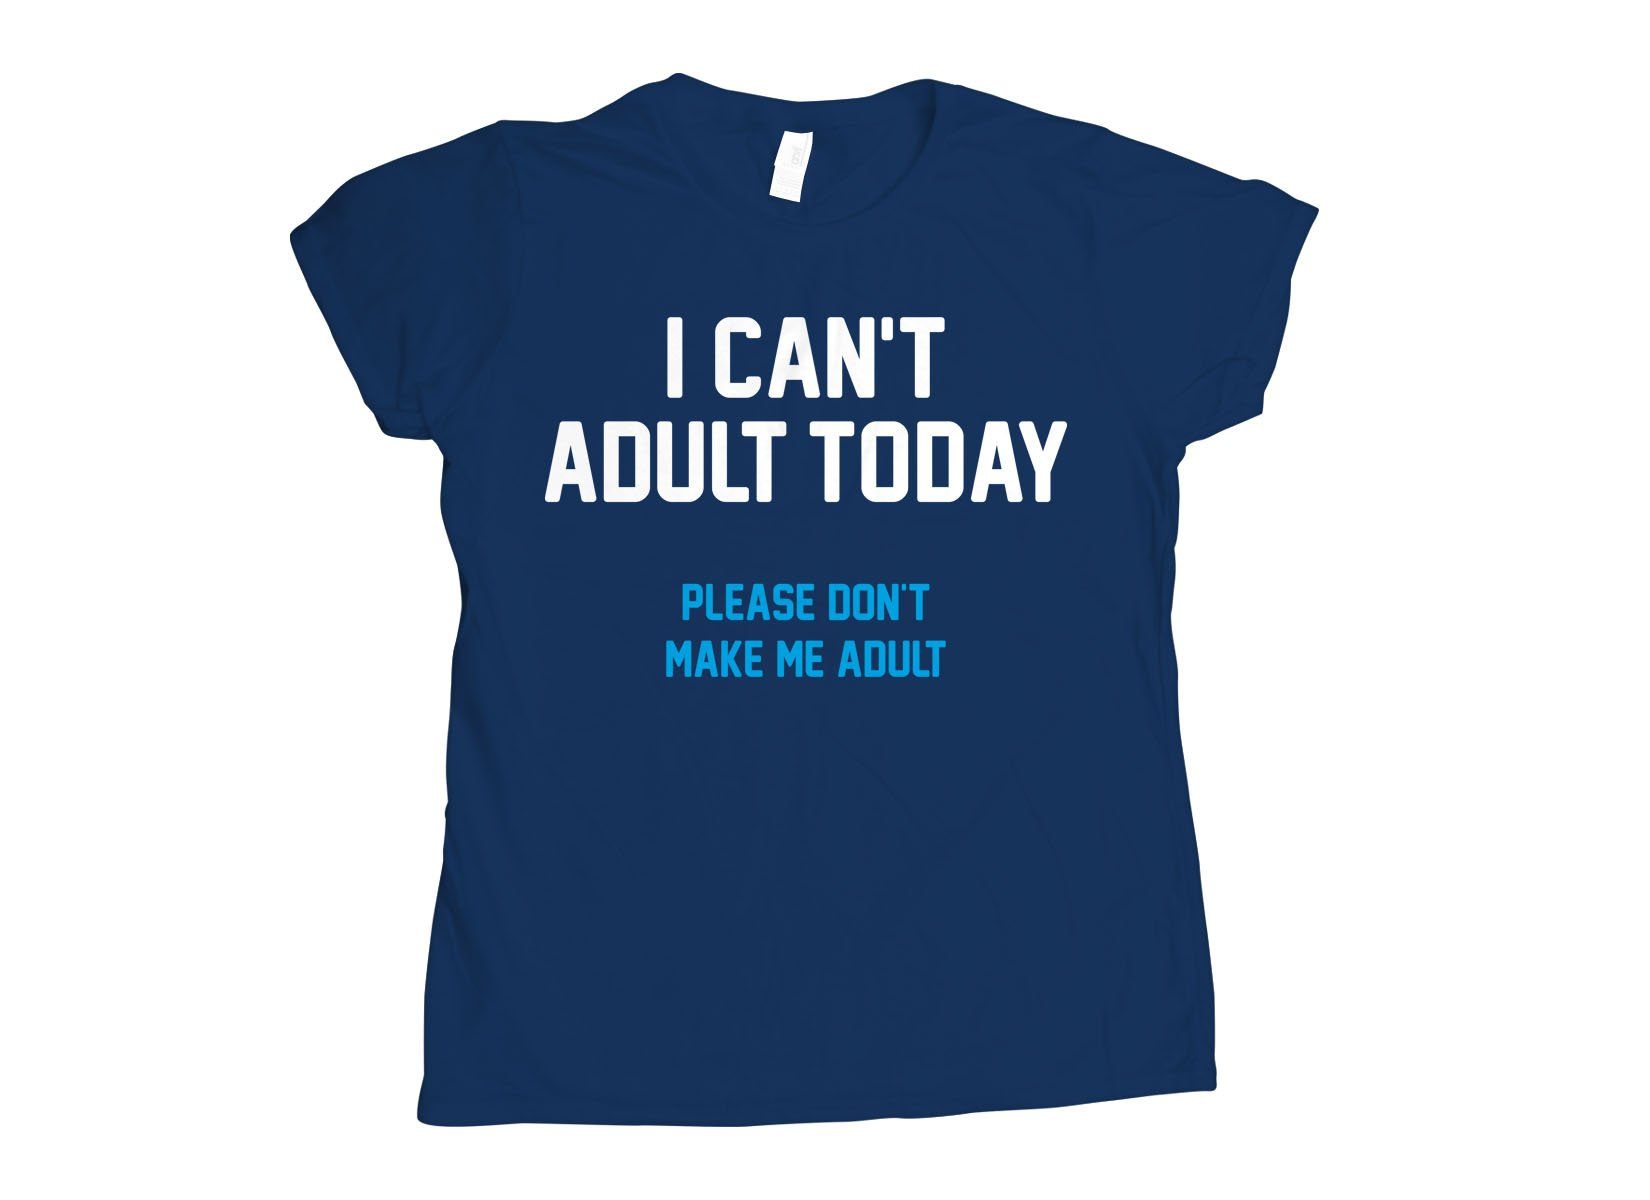 I Can't Adult Today on Womens T-Shirt